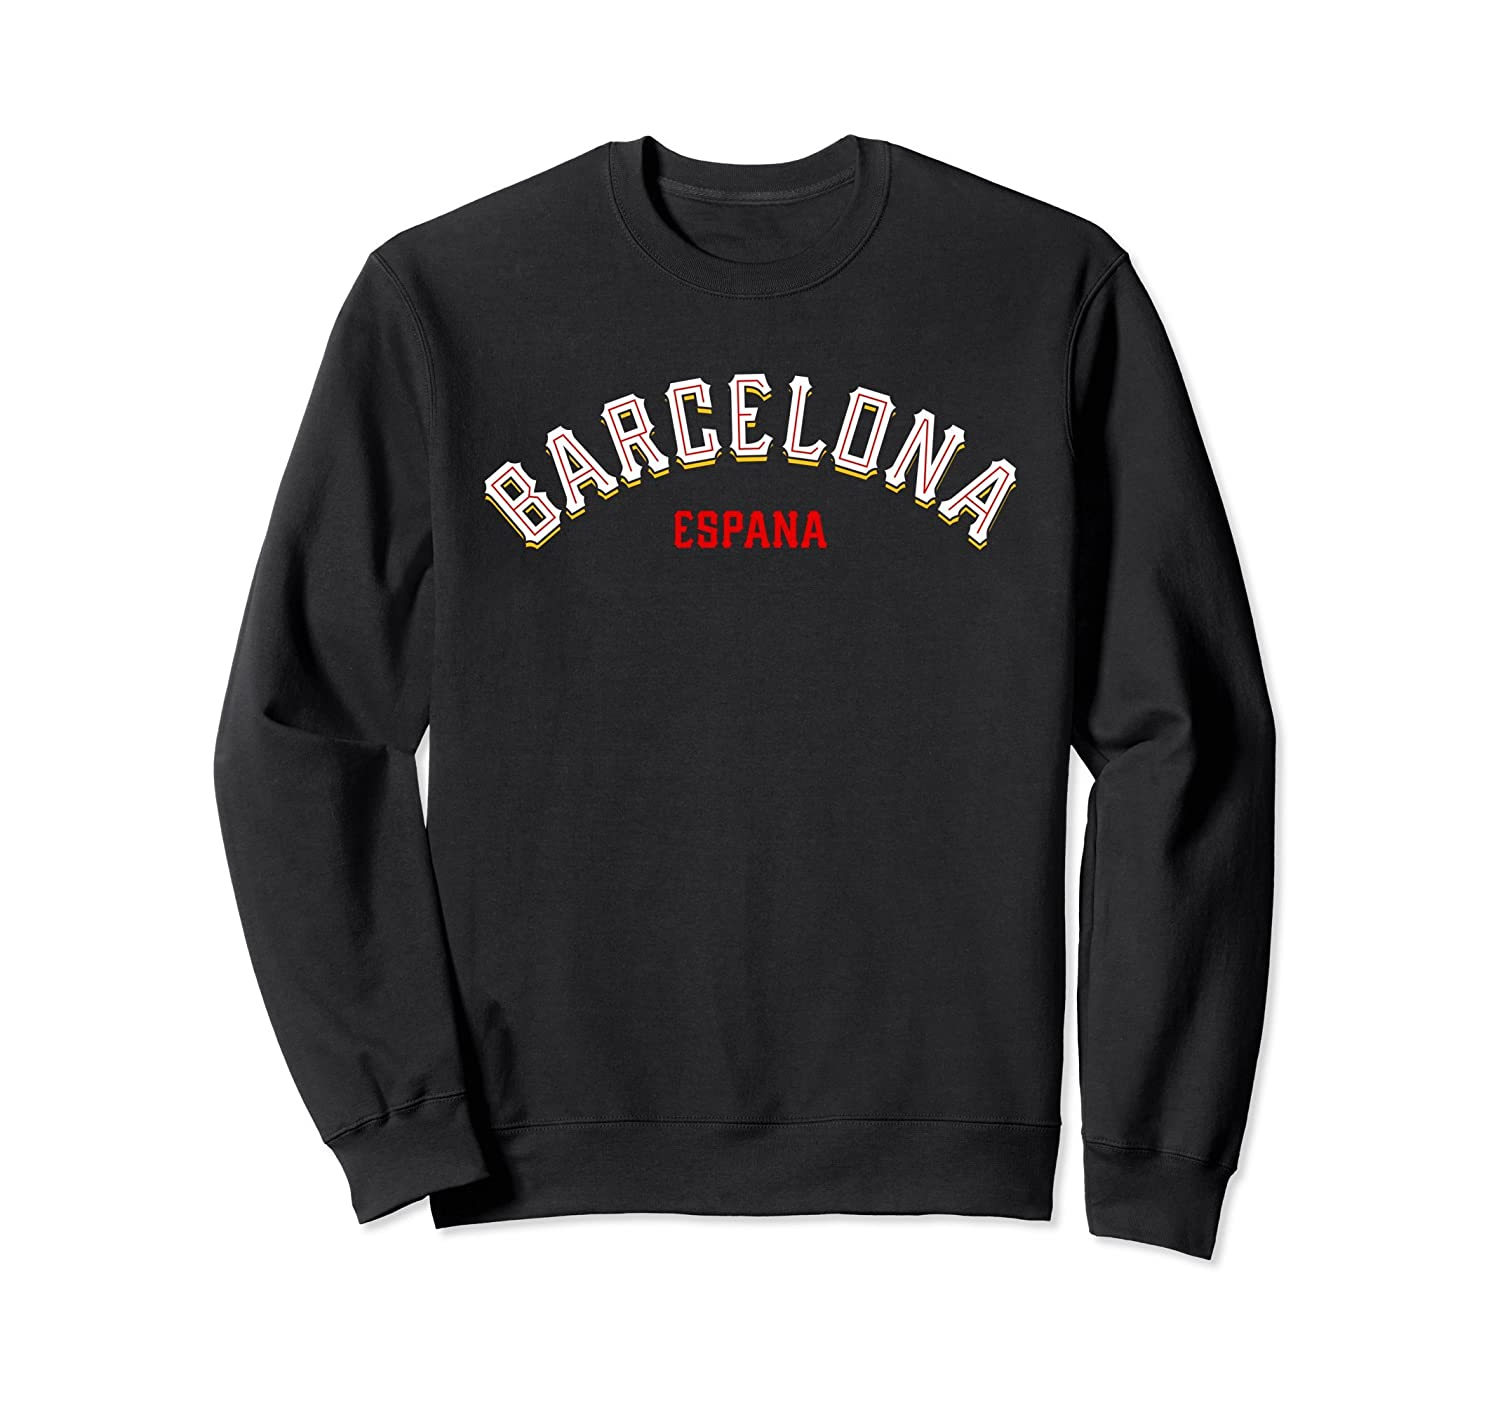 Barcelona Spain Catalonia Espana Sweatshirt-Awarplus